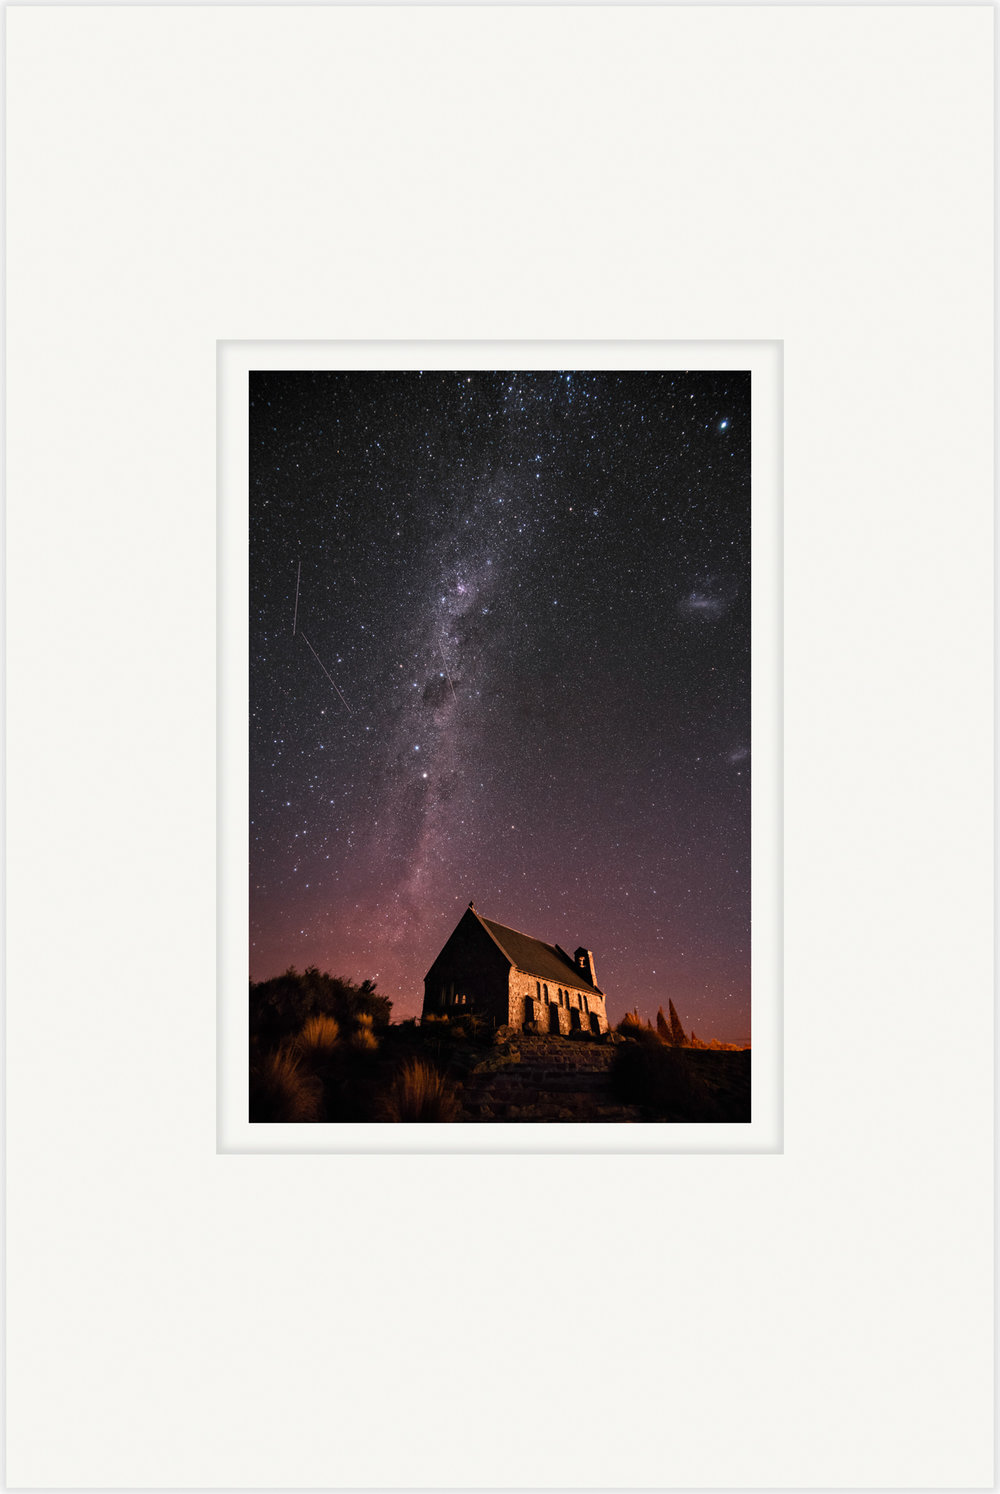 Three Wishes 10cm x 15cm Photo Paper Limited Edition of 99 IDR 249,000